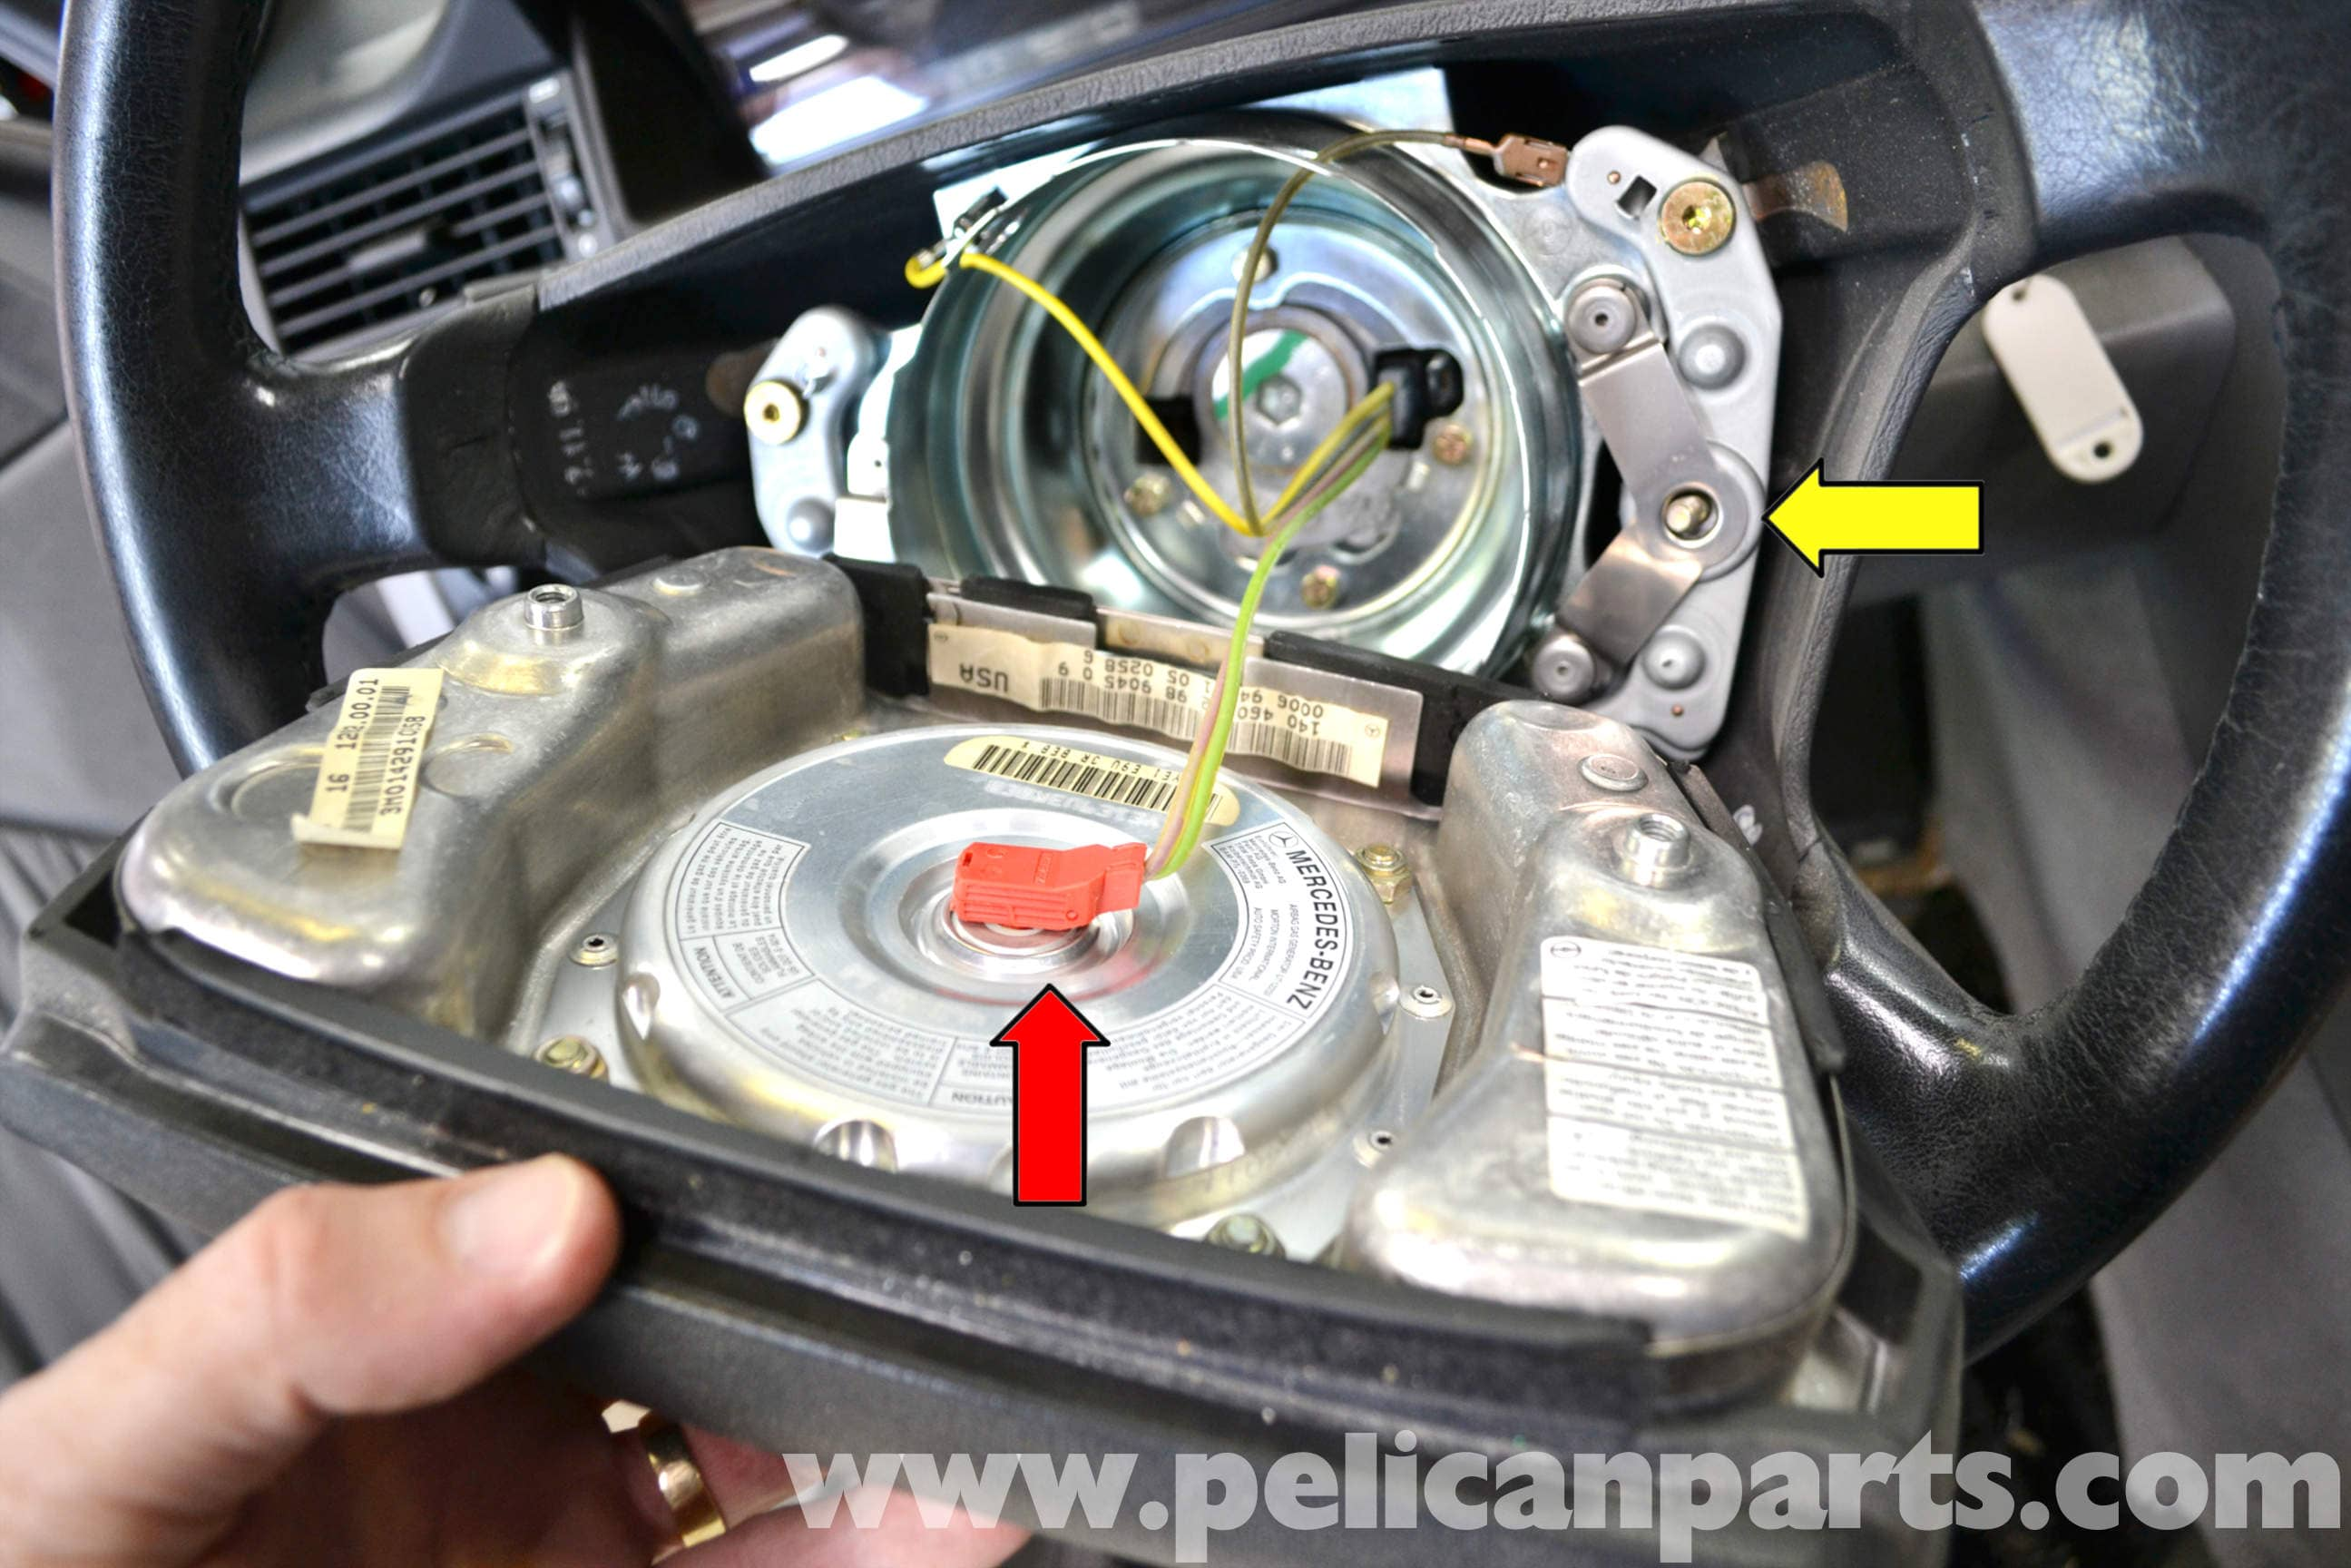 Mercedes Benz W124 Steering Wheel And Air Bag Removal